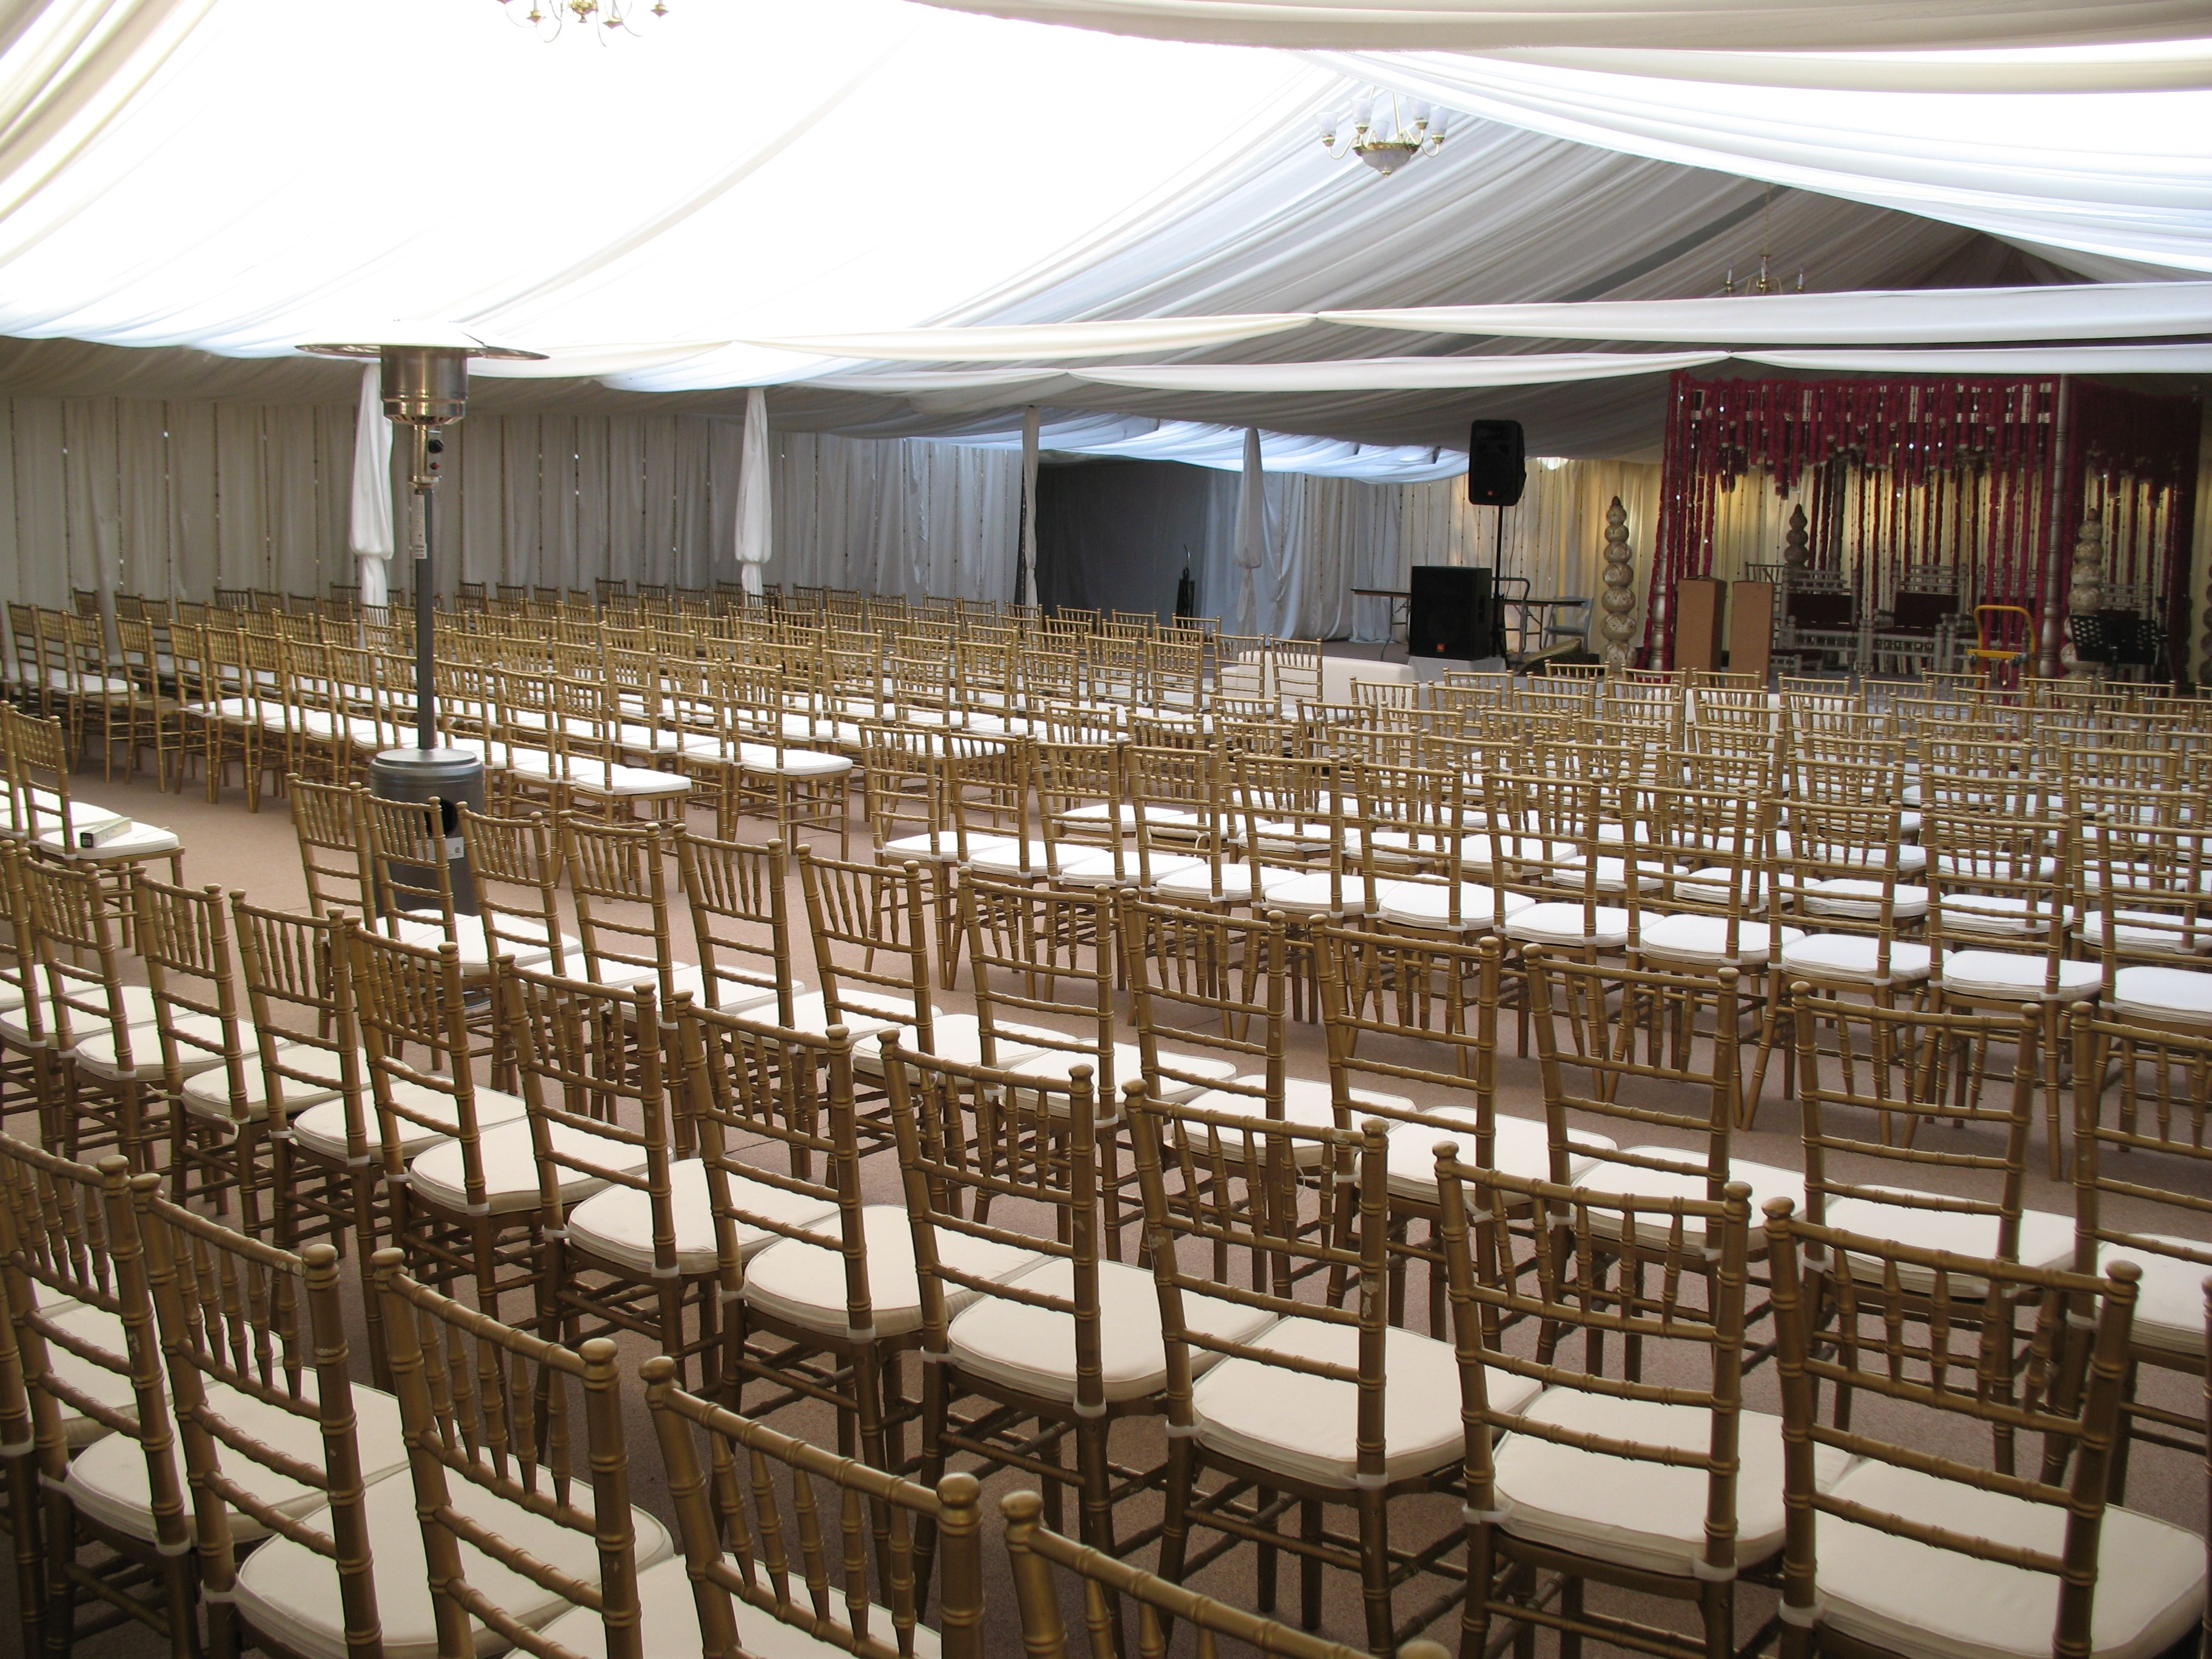 Wedding Chair Covers Montreal Bath Chairs For Elderly In India Rentals A To Remember With Backdrops Linen And